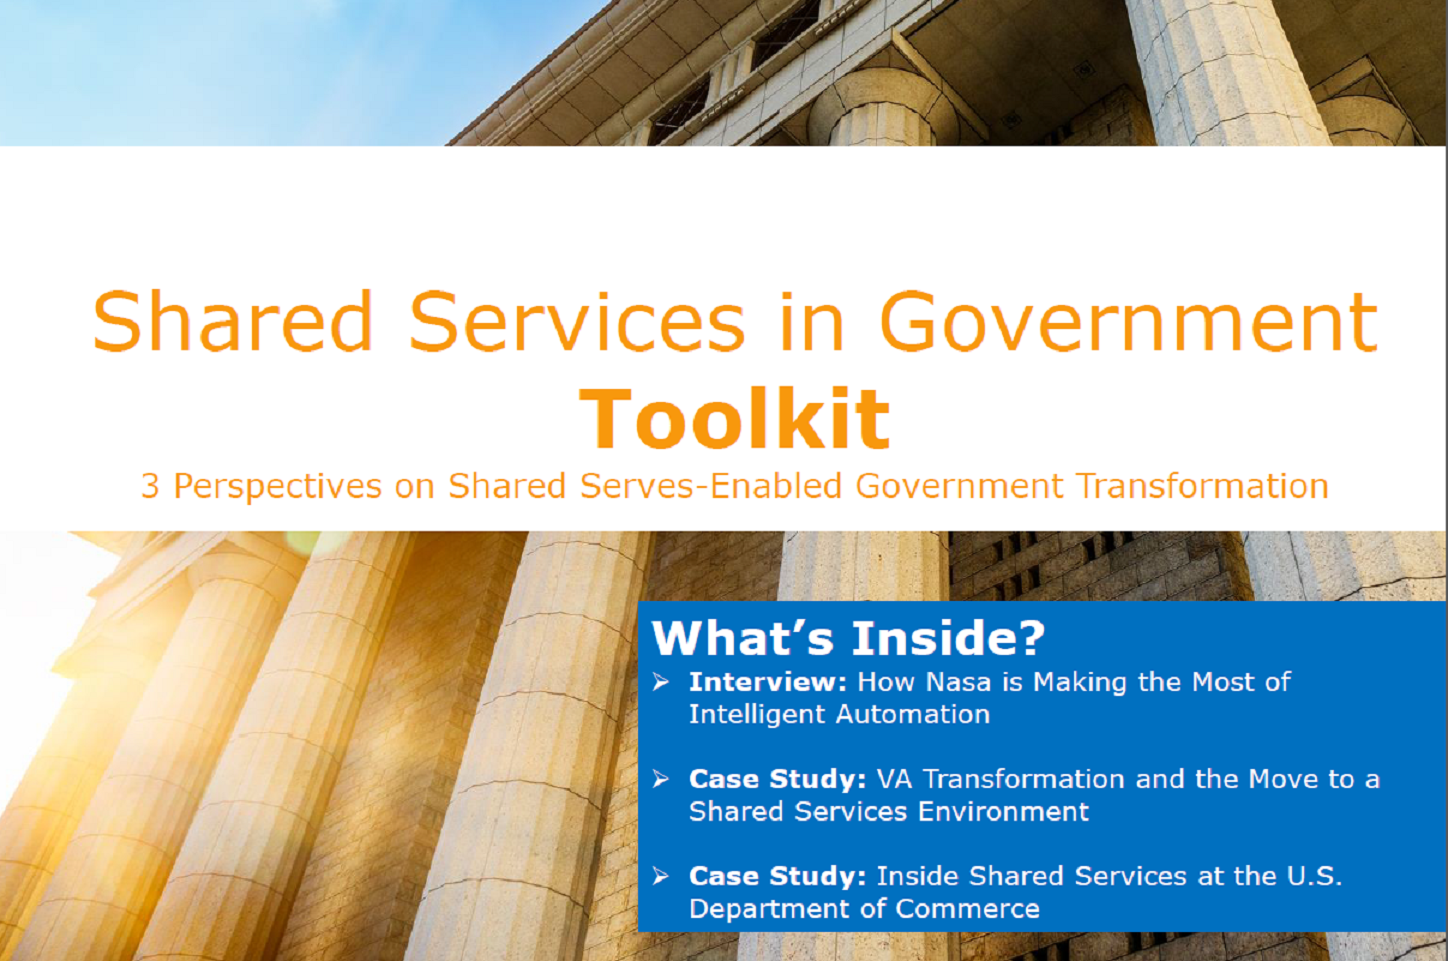 Shared Services in Government Toolkit